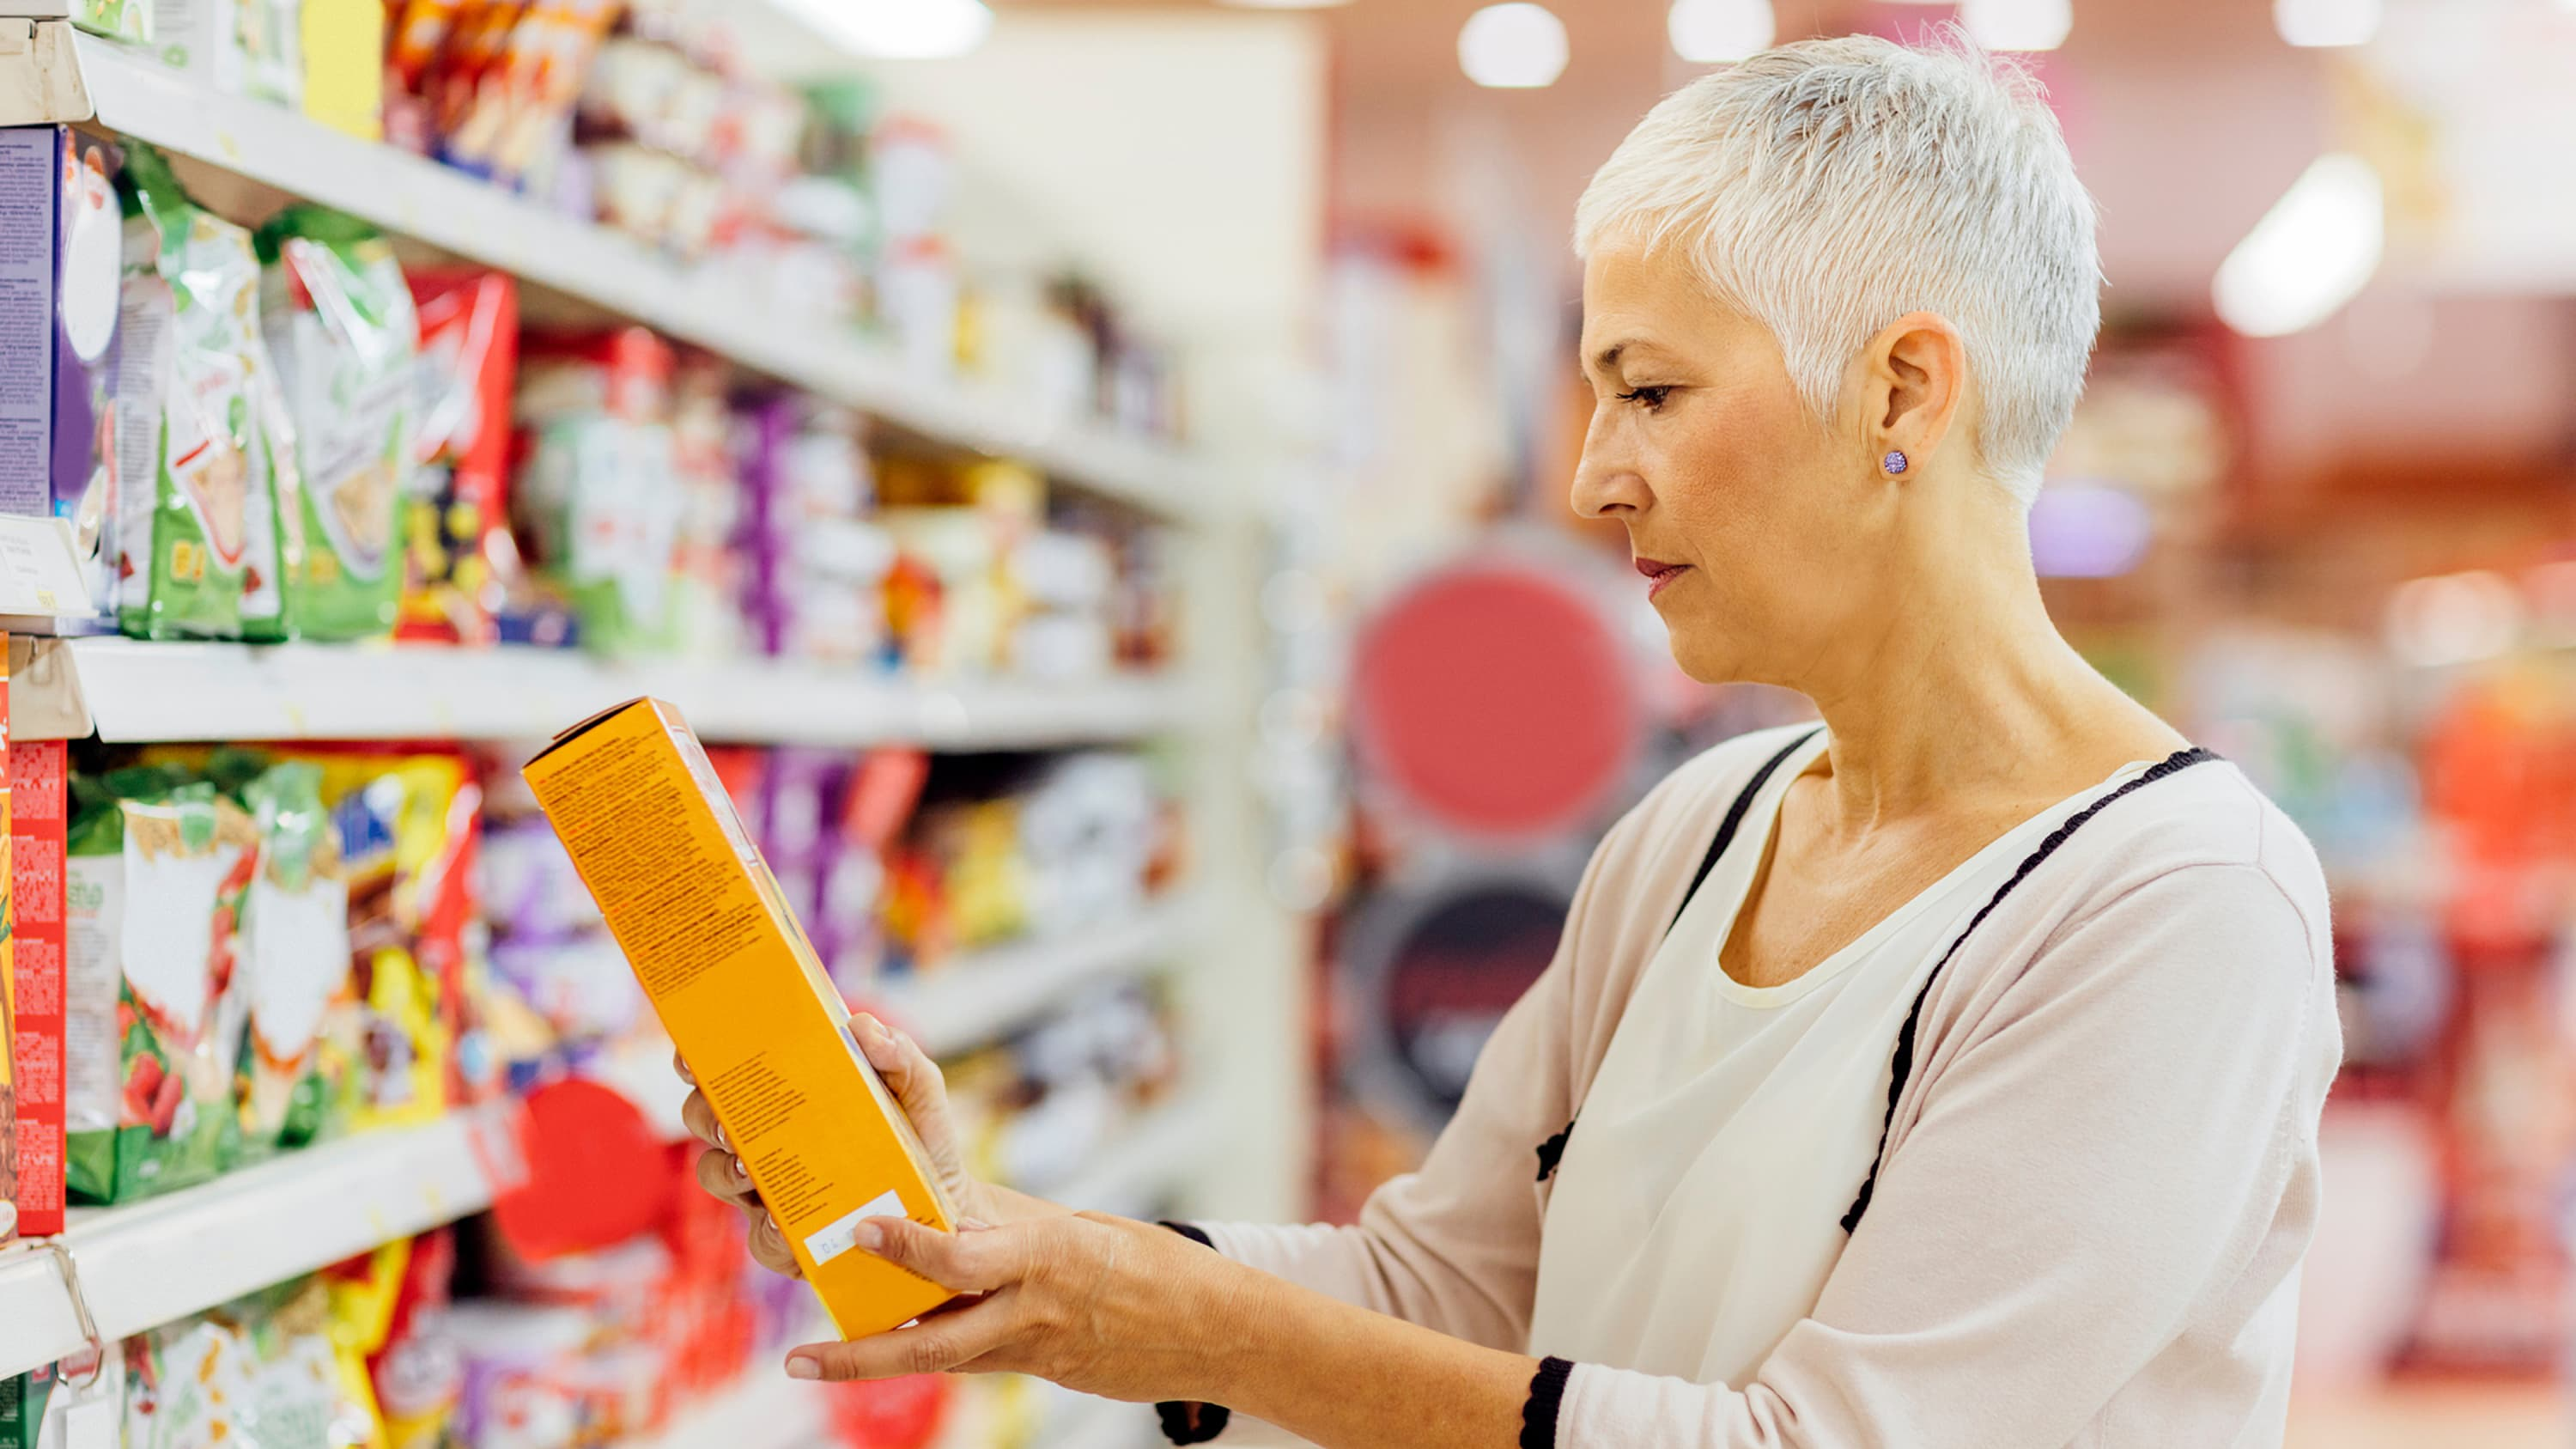 A woman examines a nutrition label, possibly for gluten.